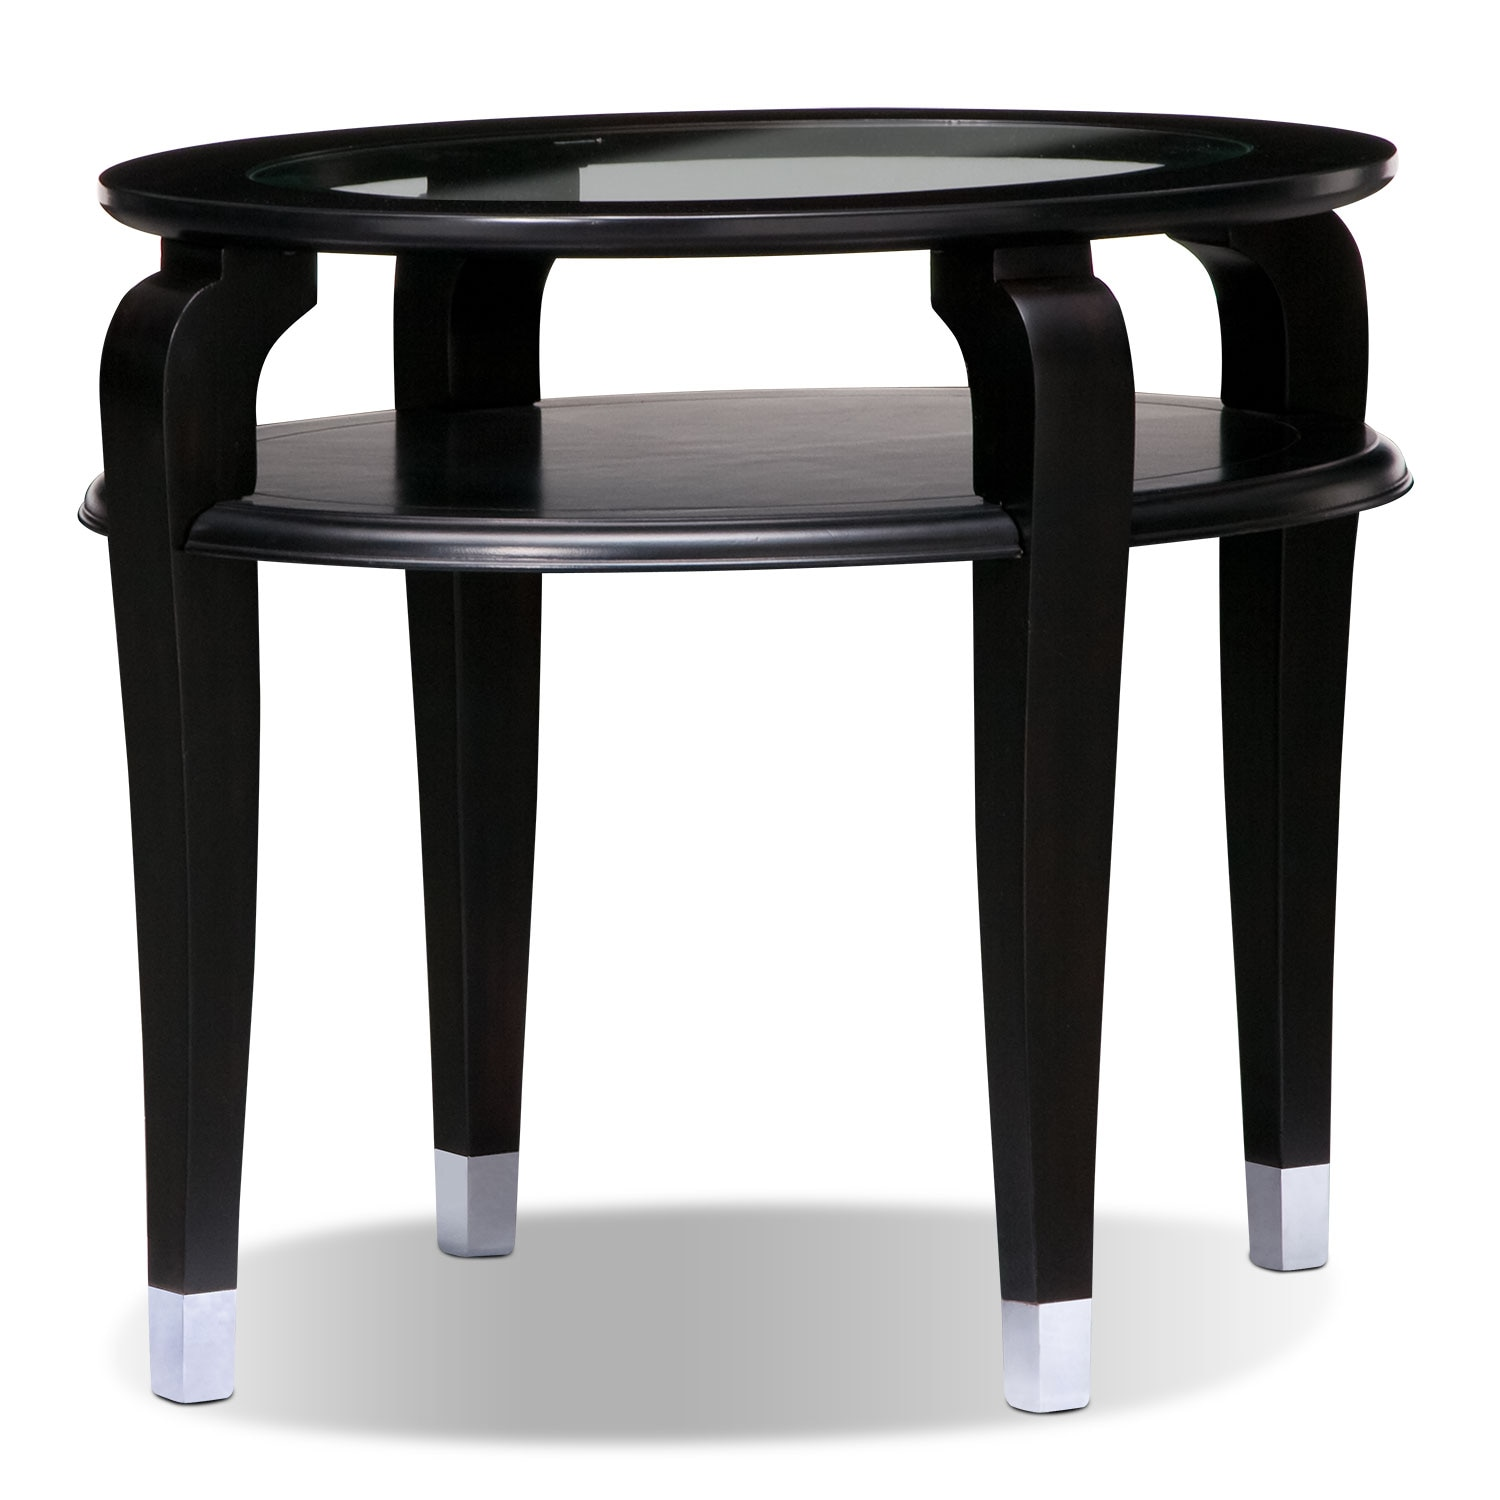 Eden End Table - Black Cherry